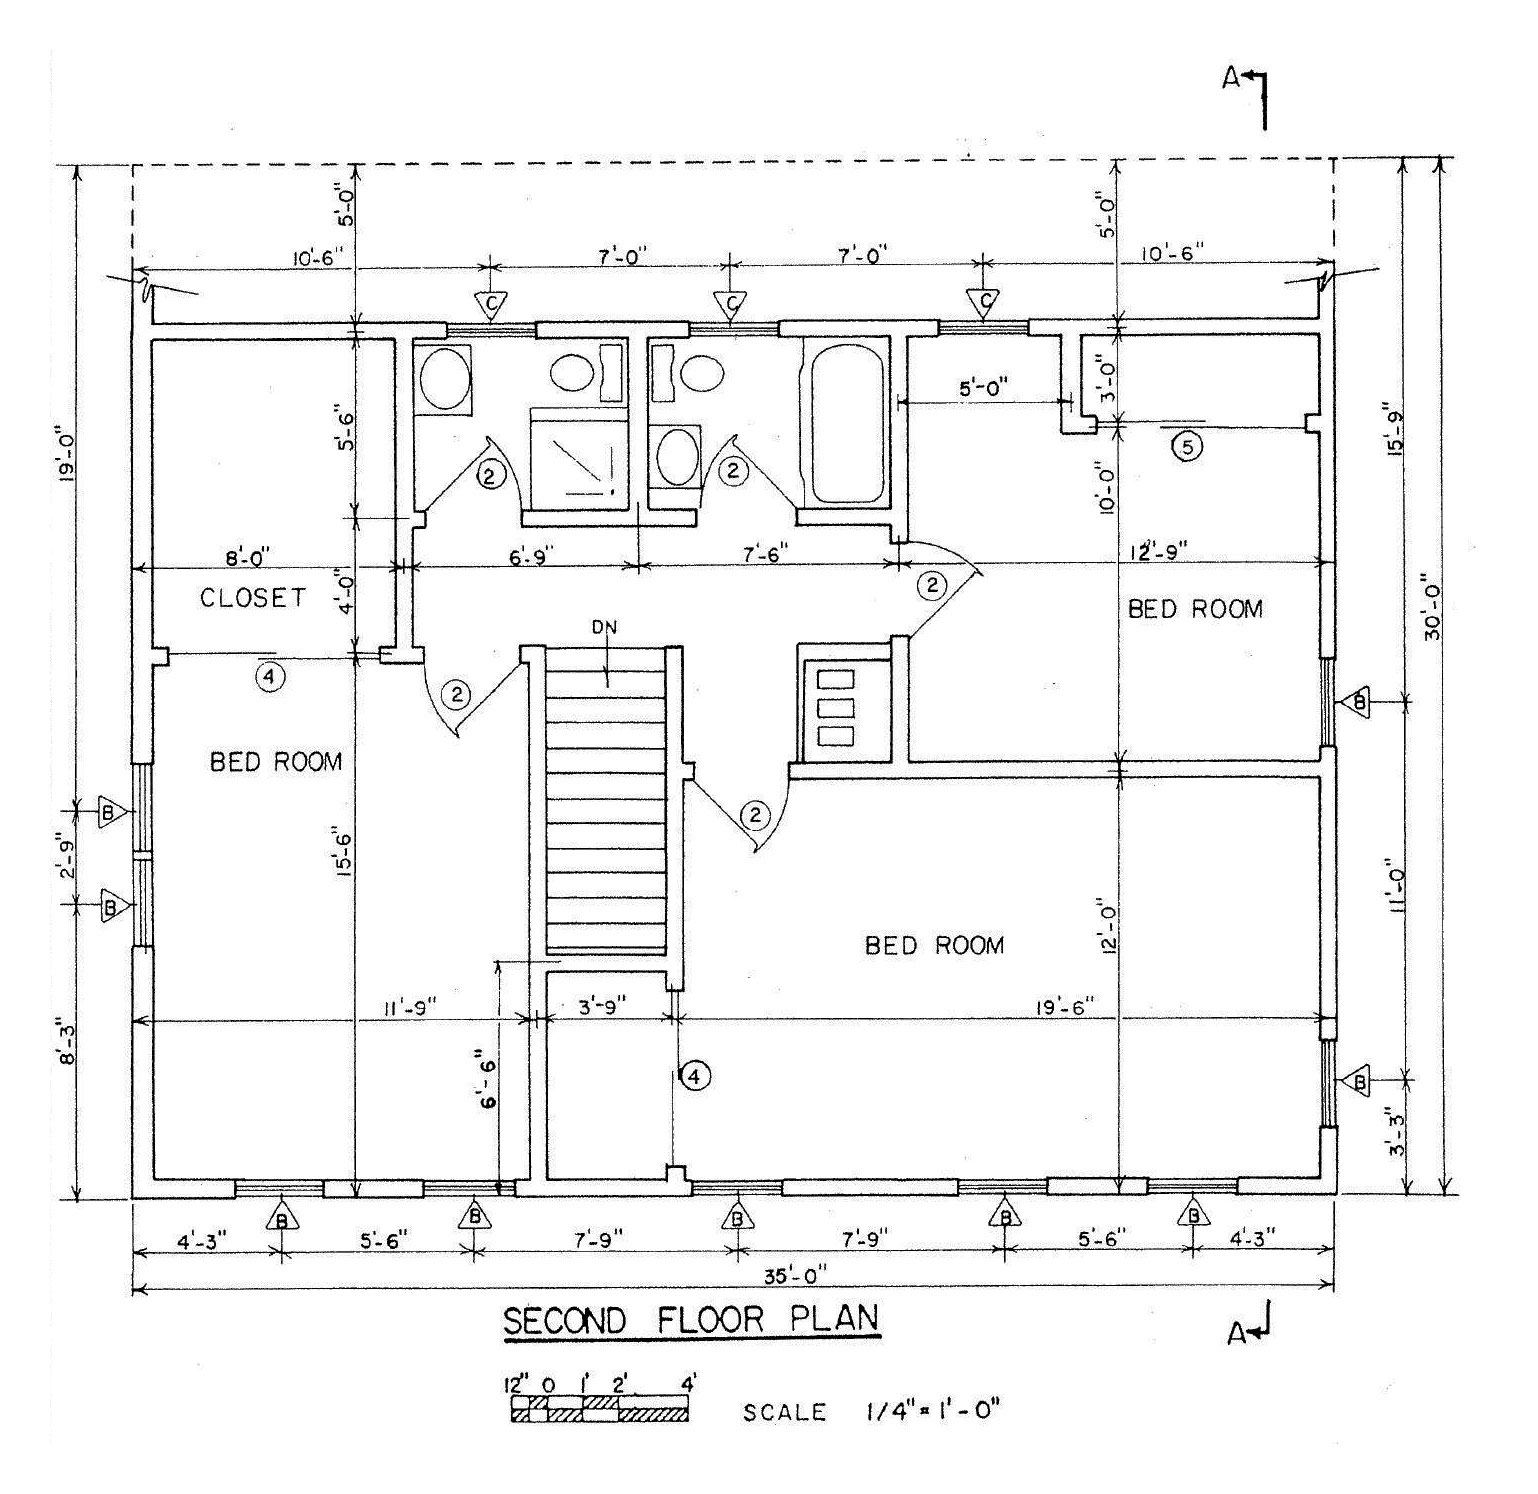 Free Floor Plans First Floor Plan Second Floor Plan